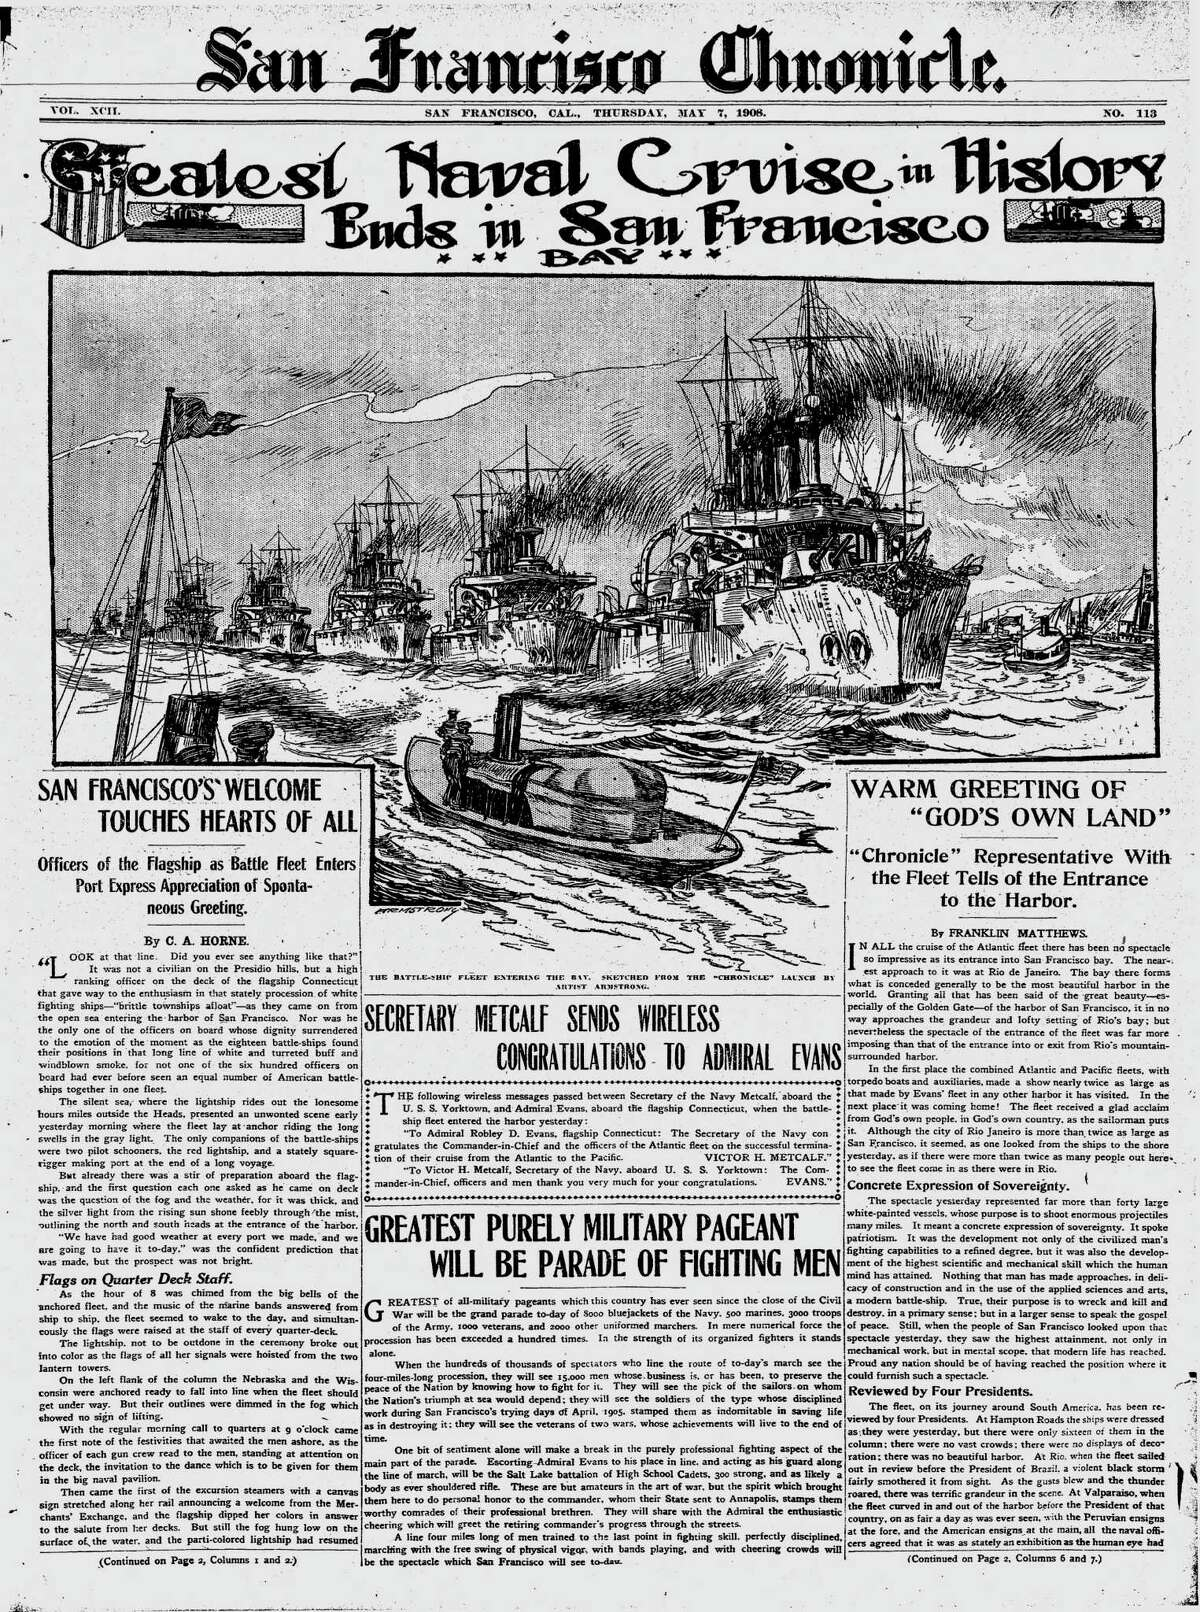 Chronicle front page when the Great White Fleet of the U.S. Navy came into San Francisco Bay.